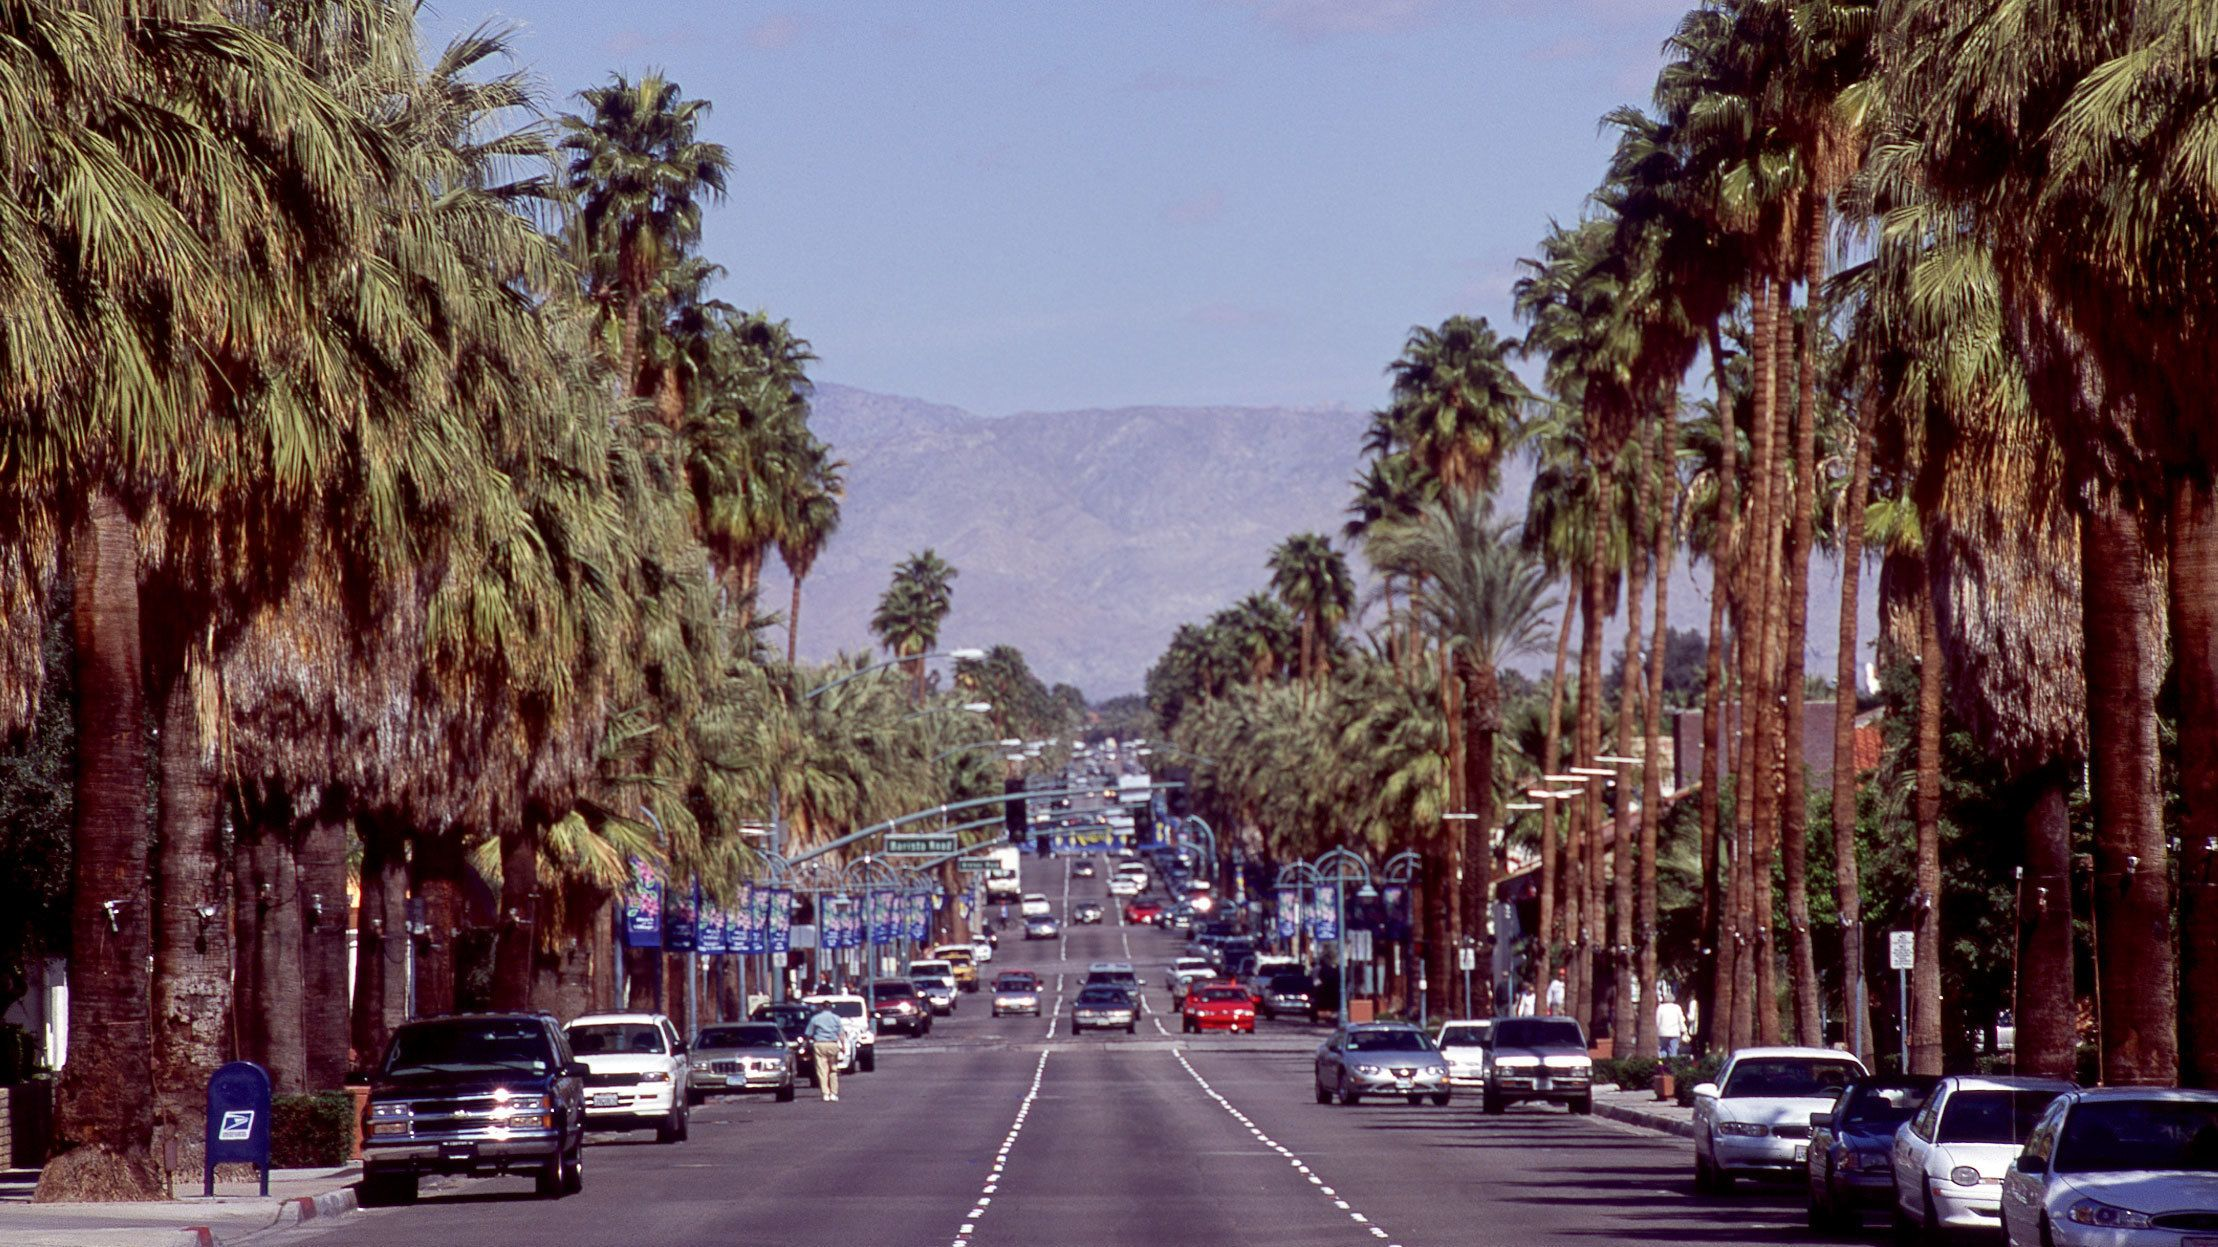 Palm trees line a busy street in Palm Springs